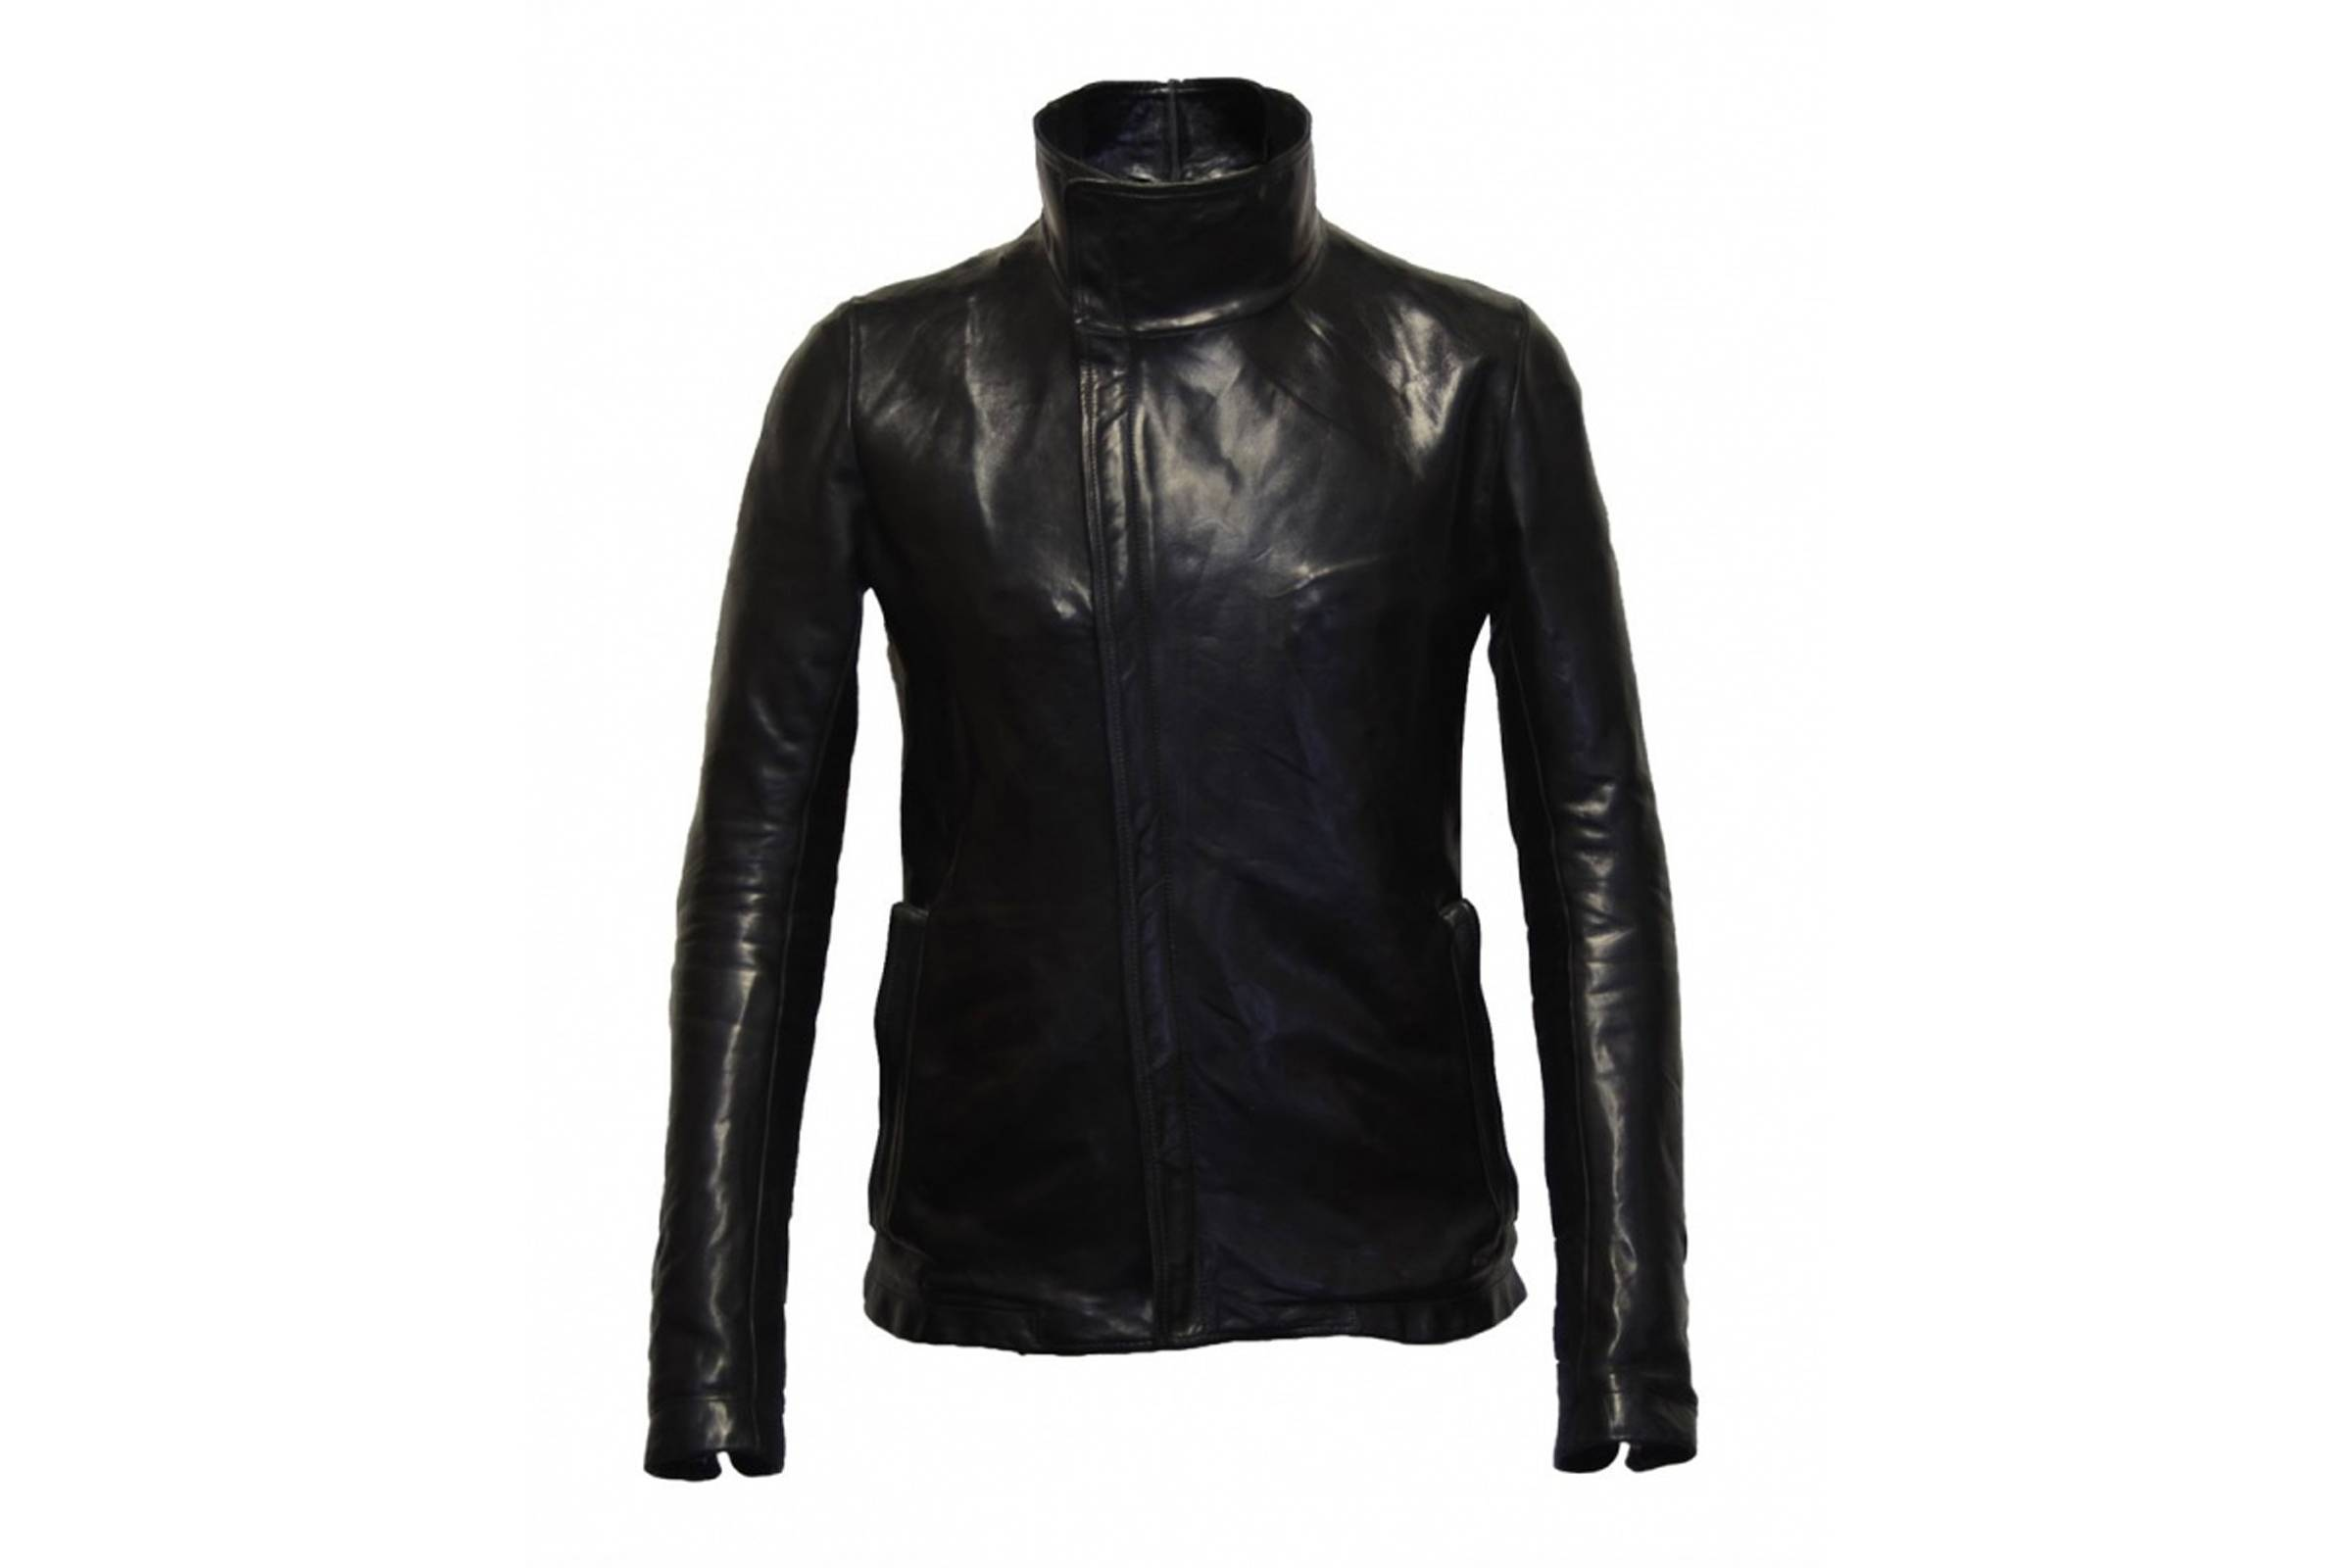 Carol Christian Poell High Neck Leather Jacket